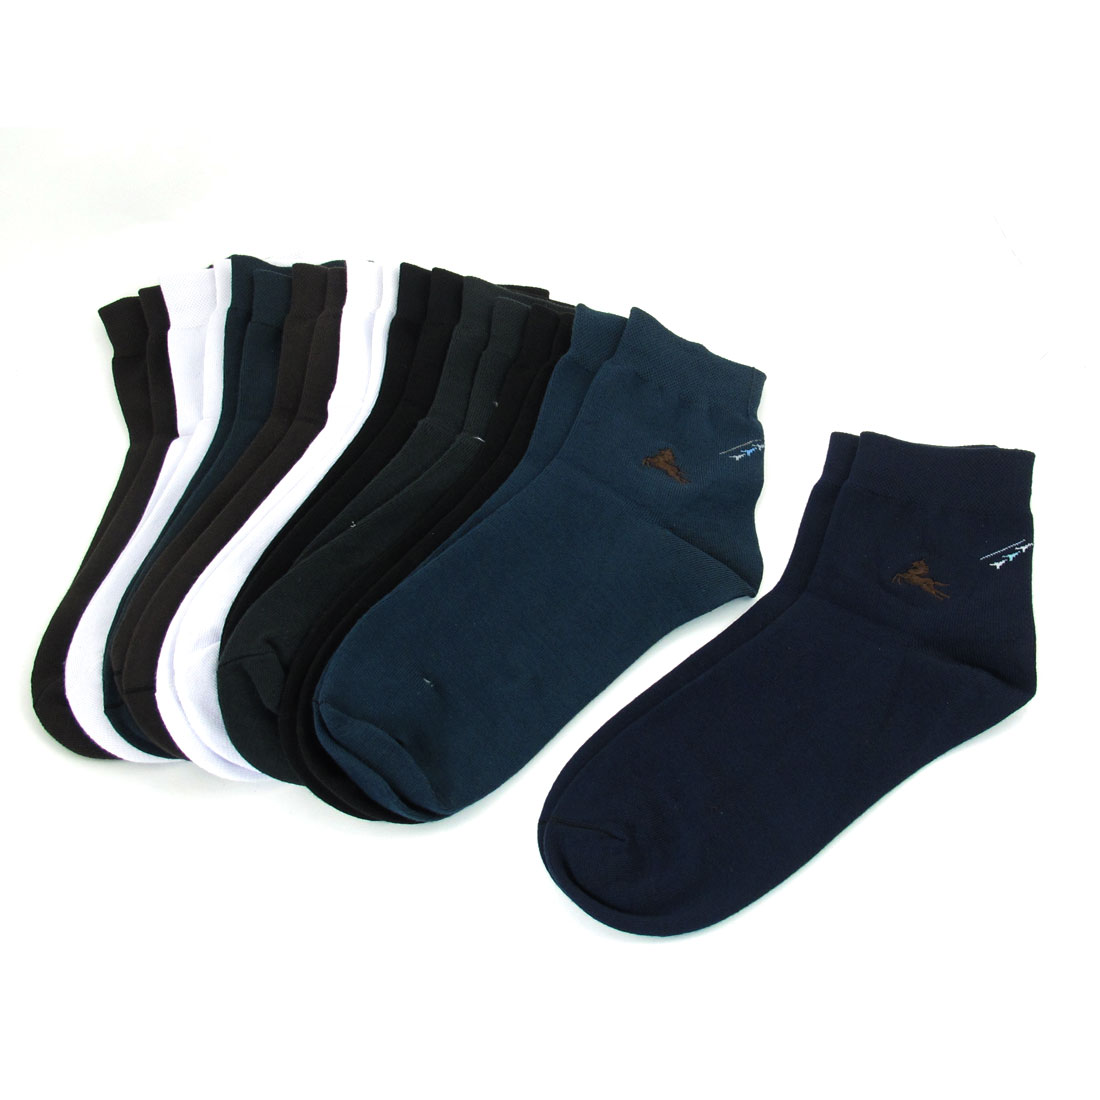 10 Pairs Assorted Colors Cotton Blends Horse Pattern Elastic Cuff Socks